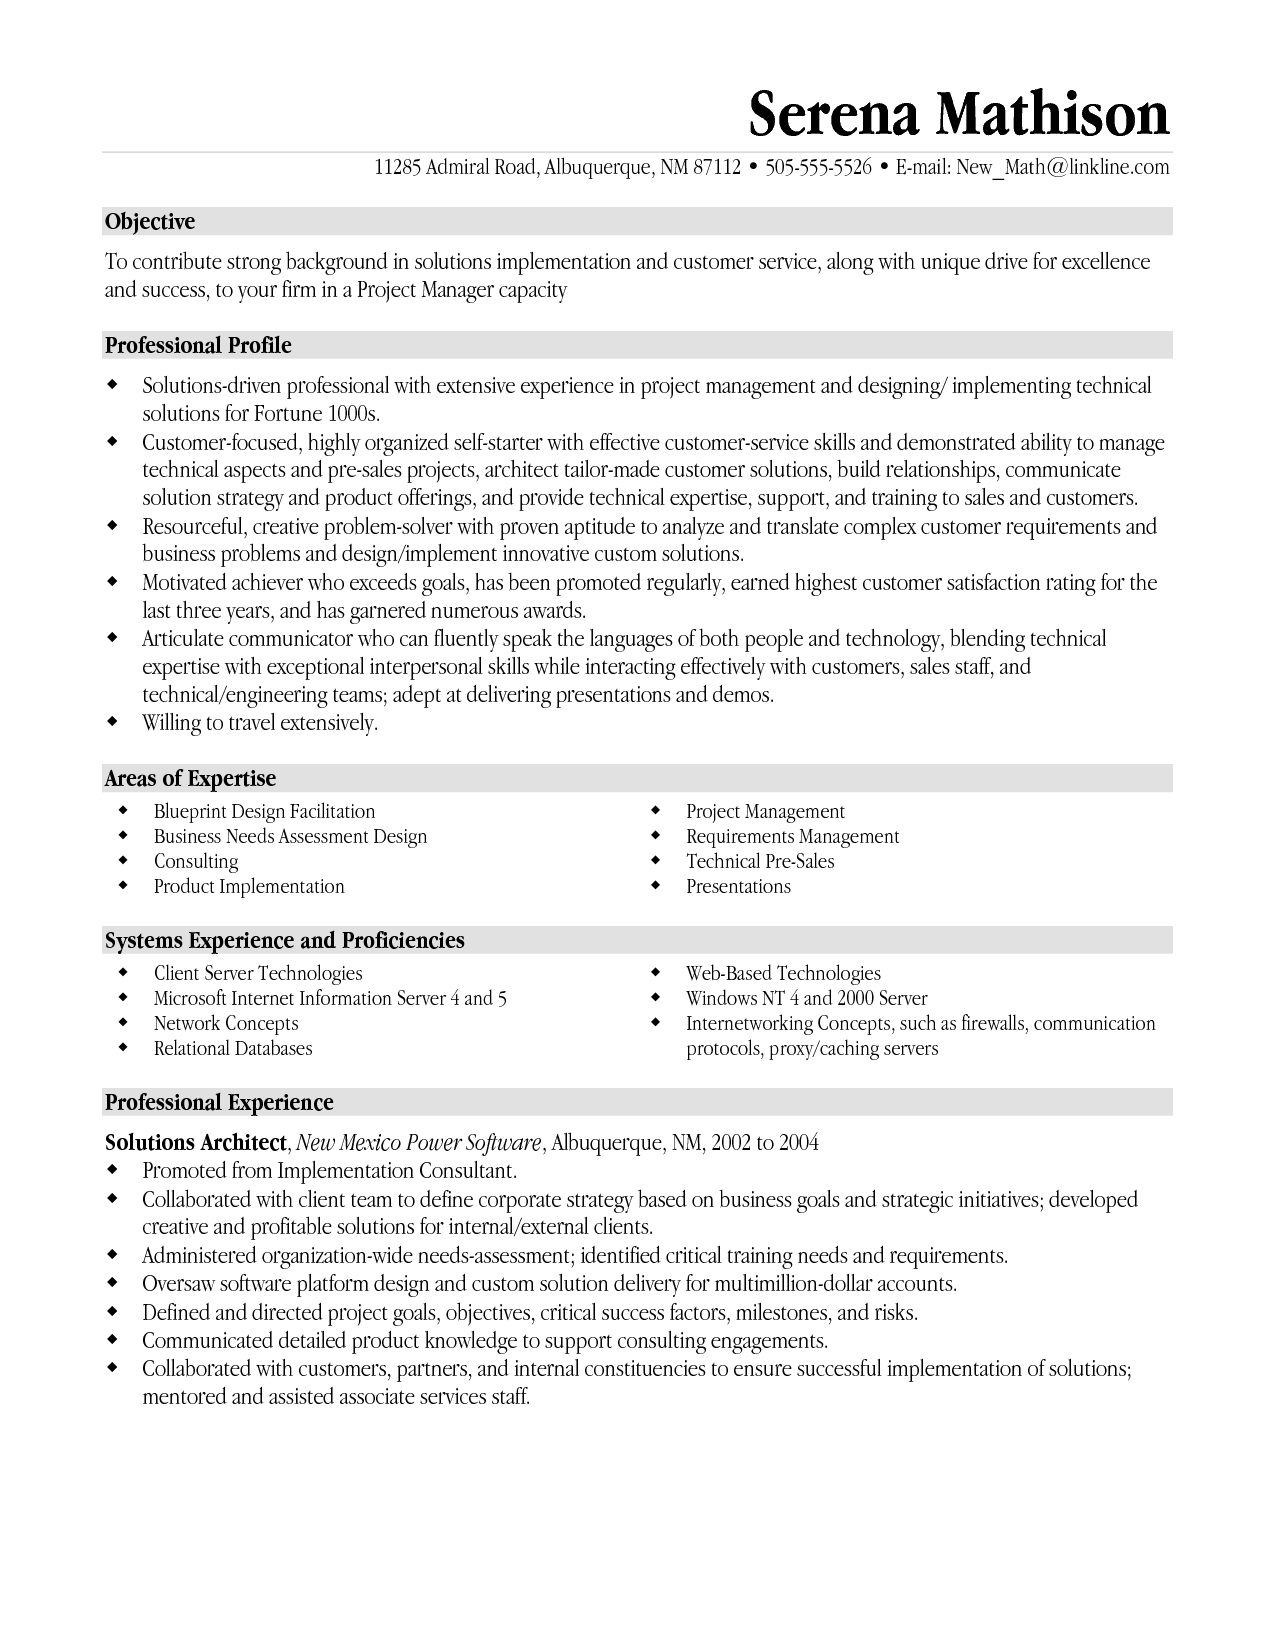 resume Management Resume resume templates project manager management resume